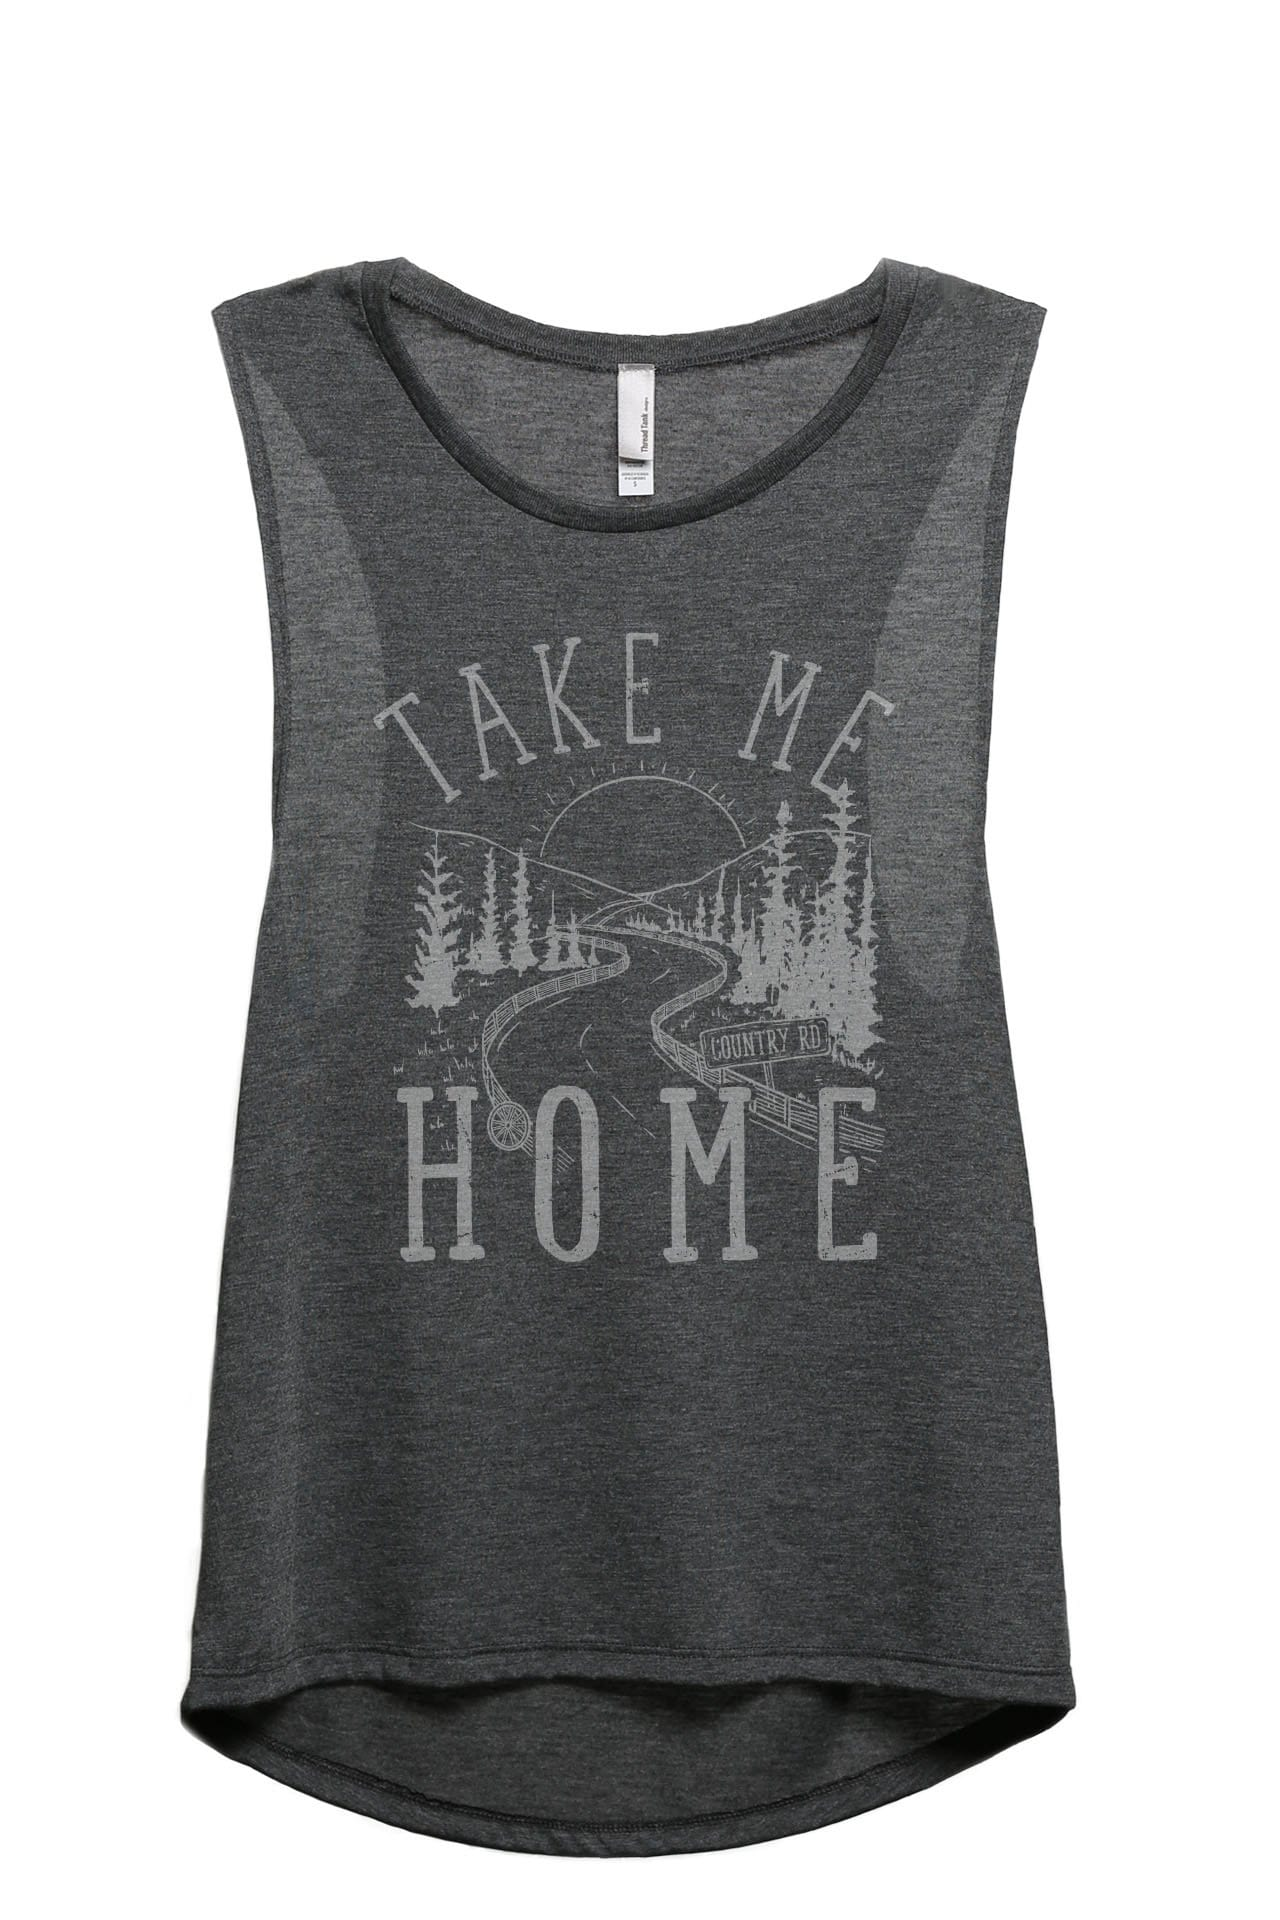 Take Me Home Country Road Women's Relaxed Muscle Tank Tee Charcoal